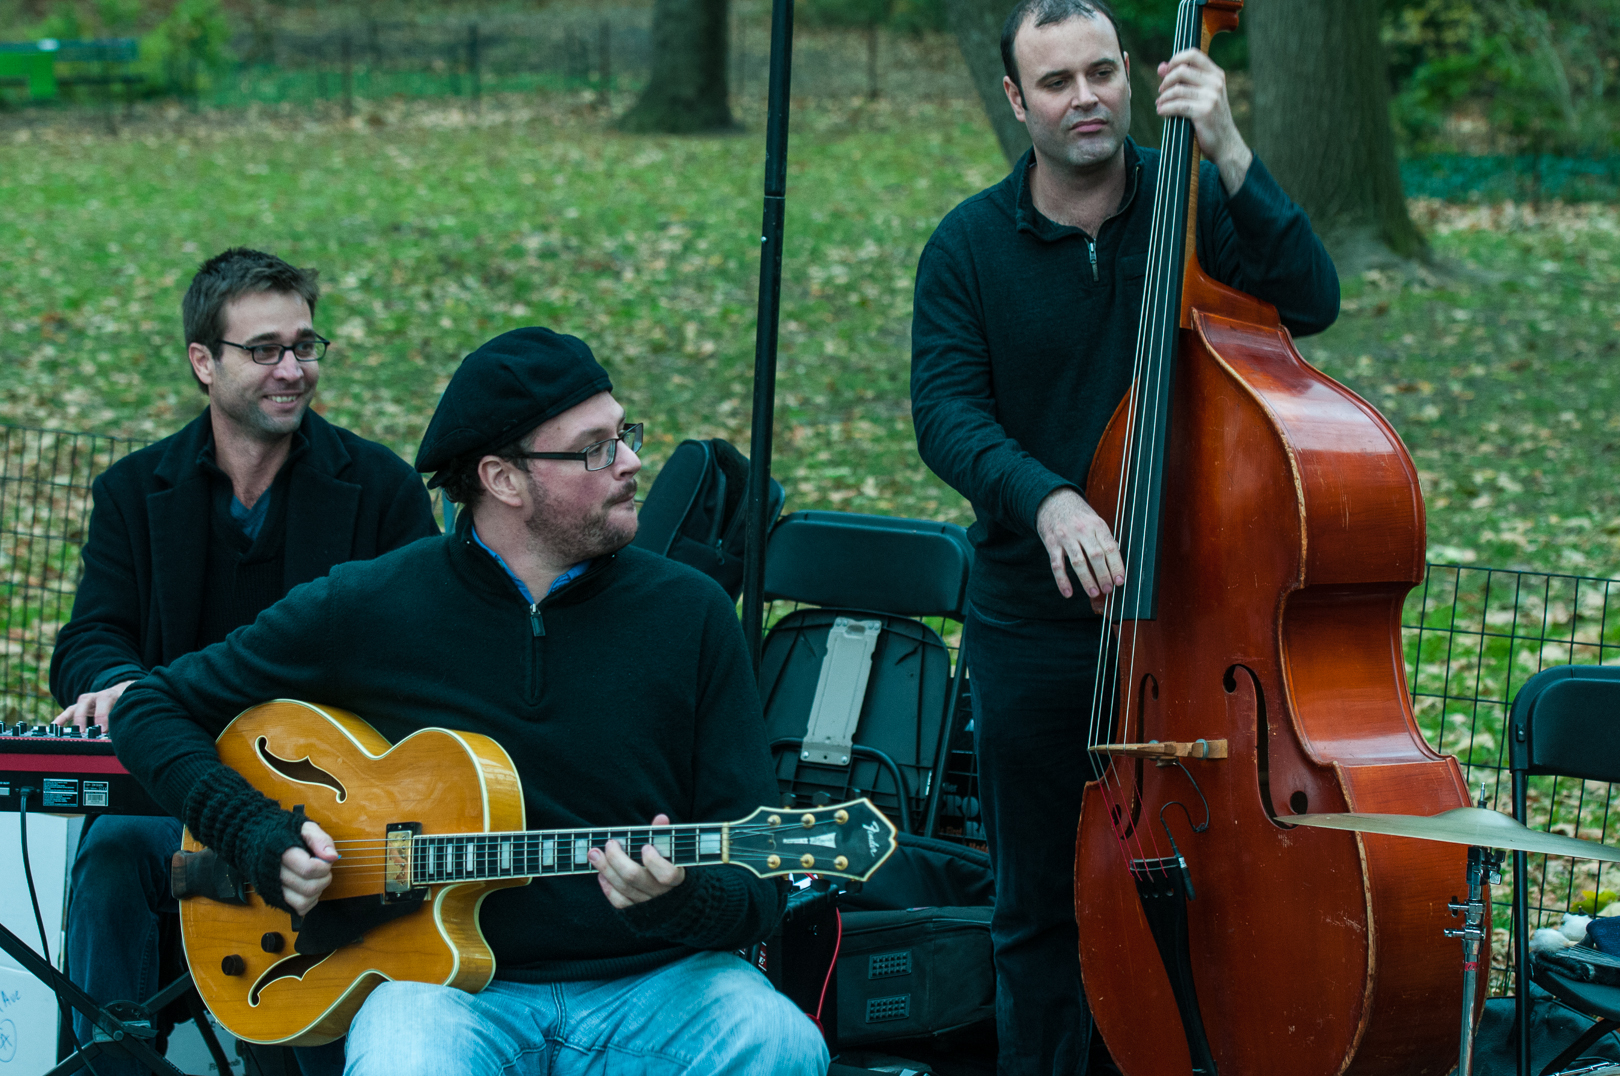 Roy Dunlap, Doug Wamble and Jeff Hanley at Jazz and Colors in Central Park